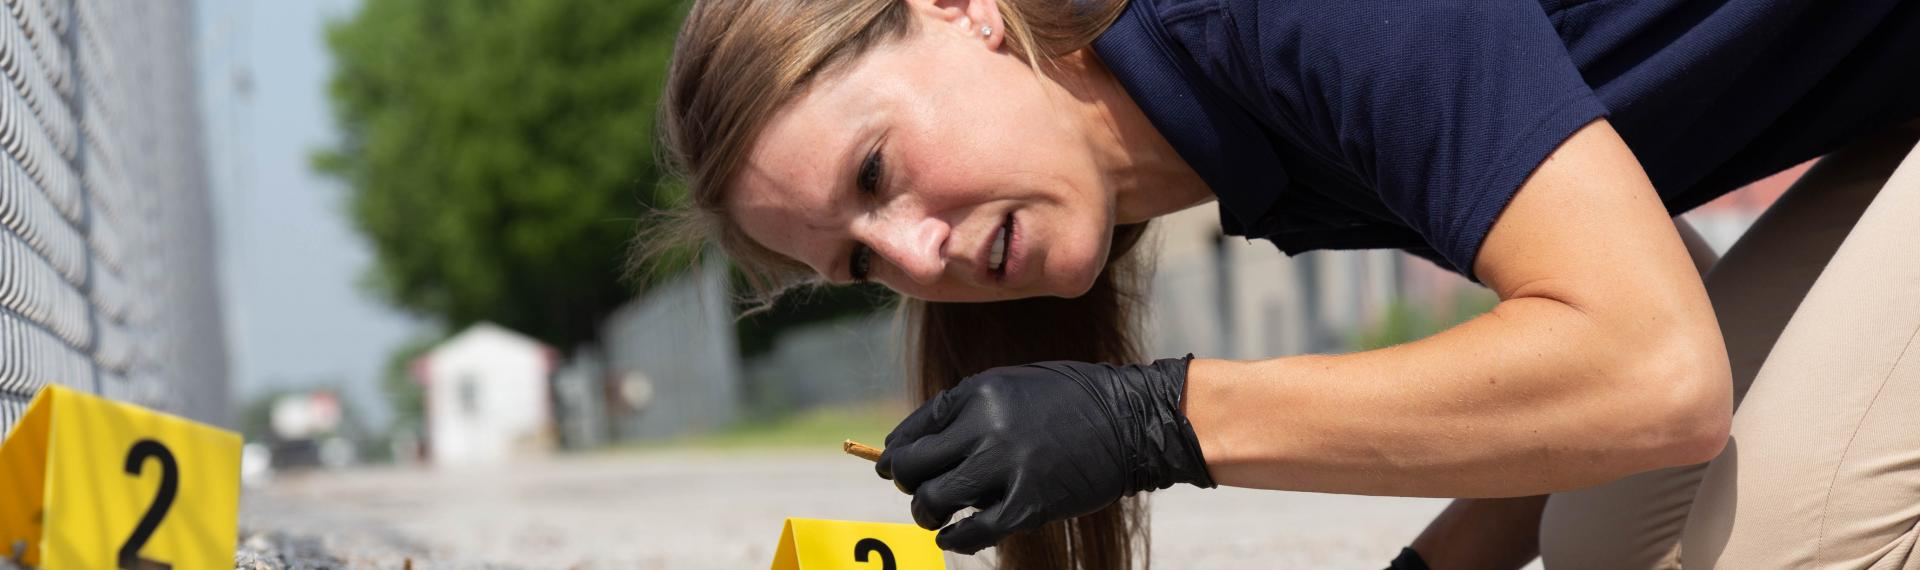 Agent identifying evidence at a crime scene.